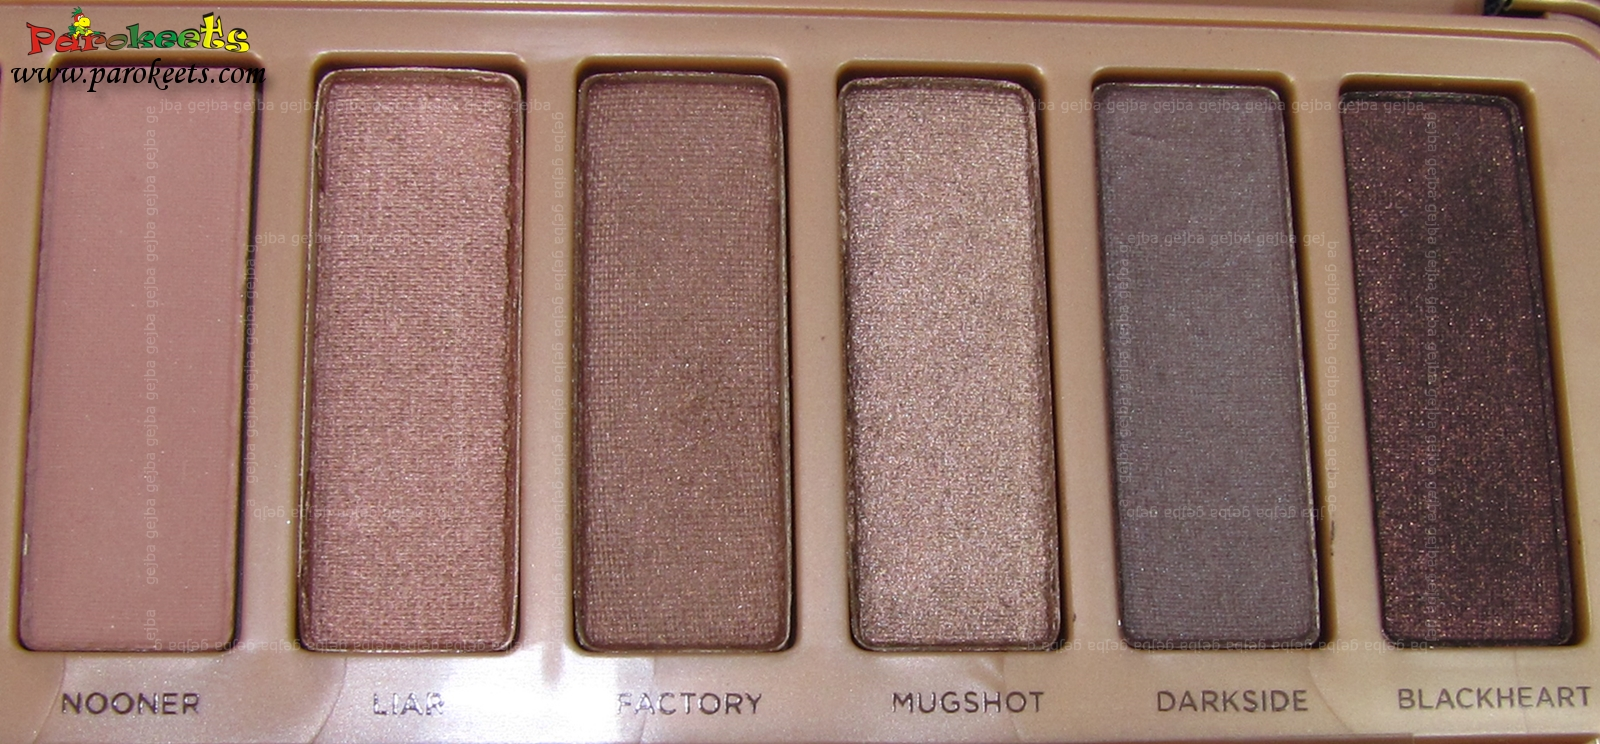 Urban Decay Naked 3 palette Nooner, Liar, Factory, Mugshot, Darkside, Blackheart